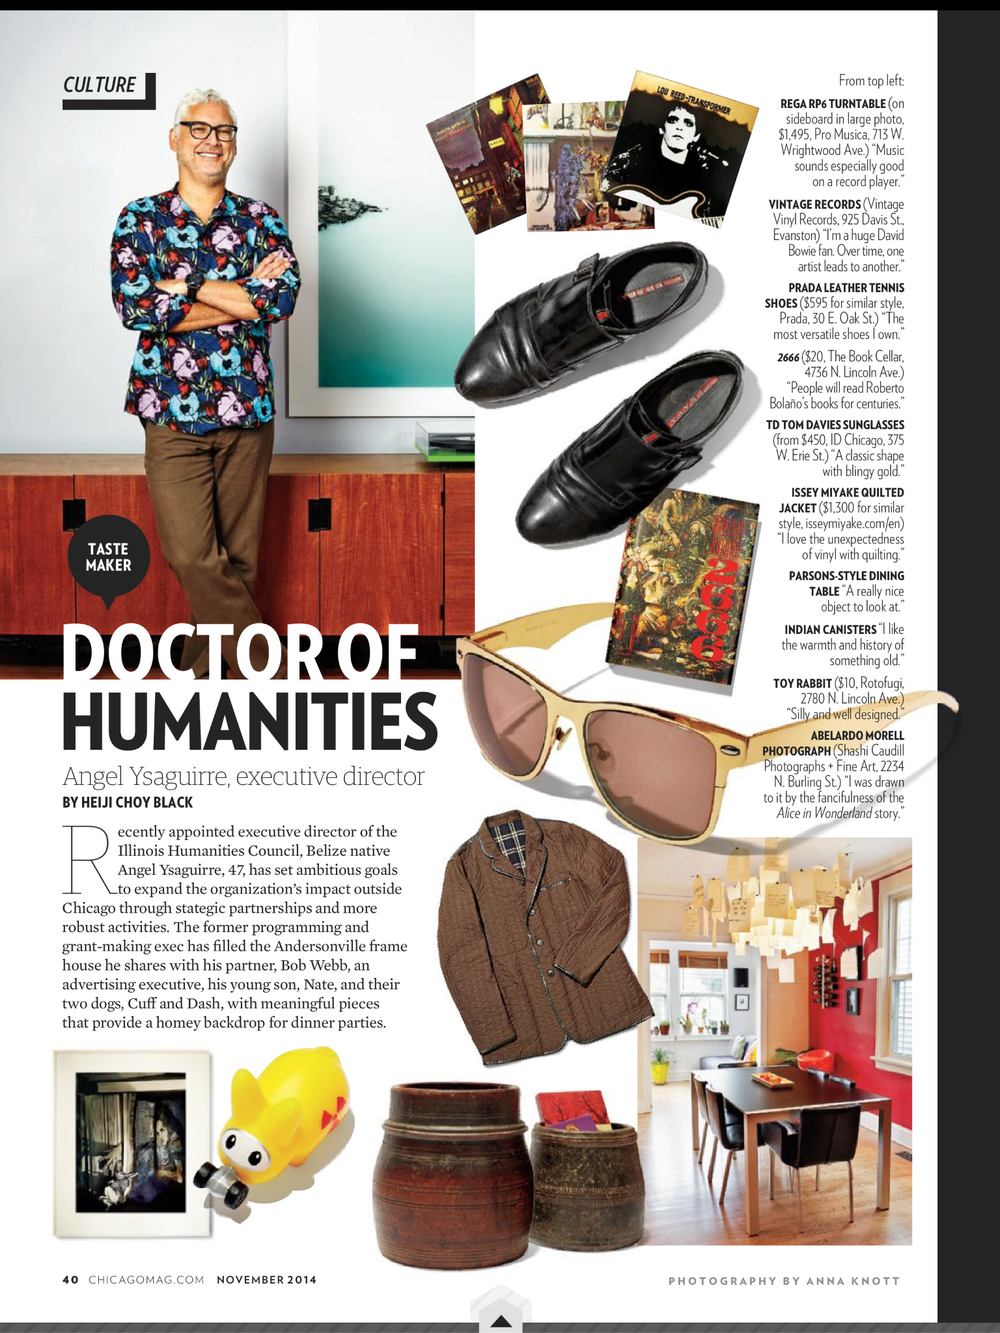 'Doctor of Humanities' article.